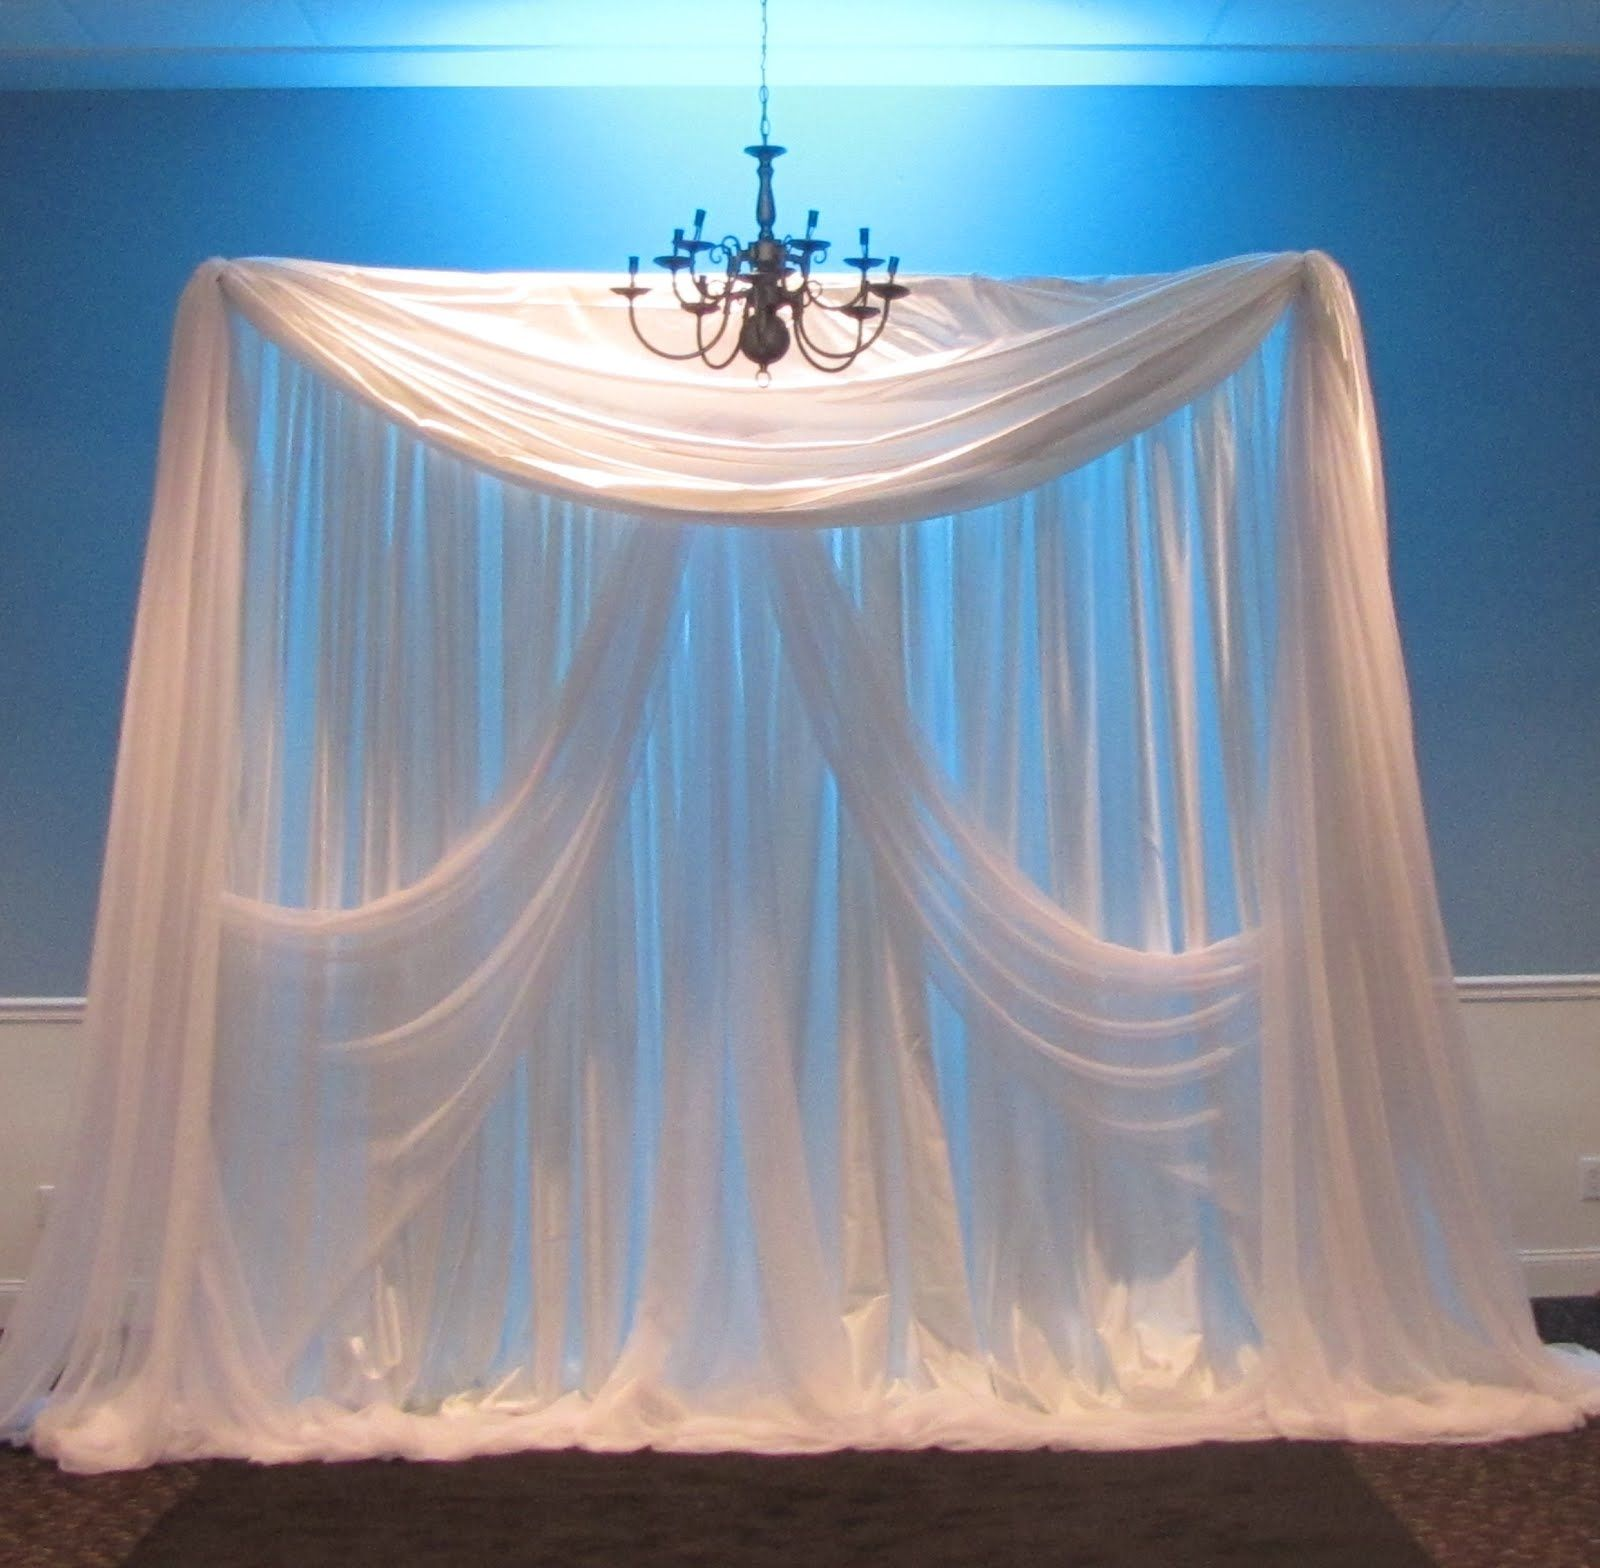 How to make a fabric backdrop - Party People Celebration Company Special Event Decor Custom Balloon Decor And Fabric Designs Elegant Wedding Ceremony Backdrop